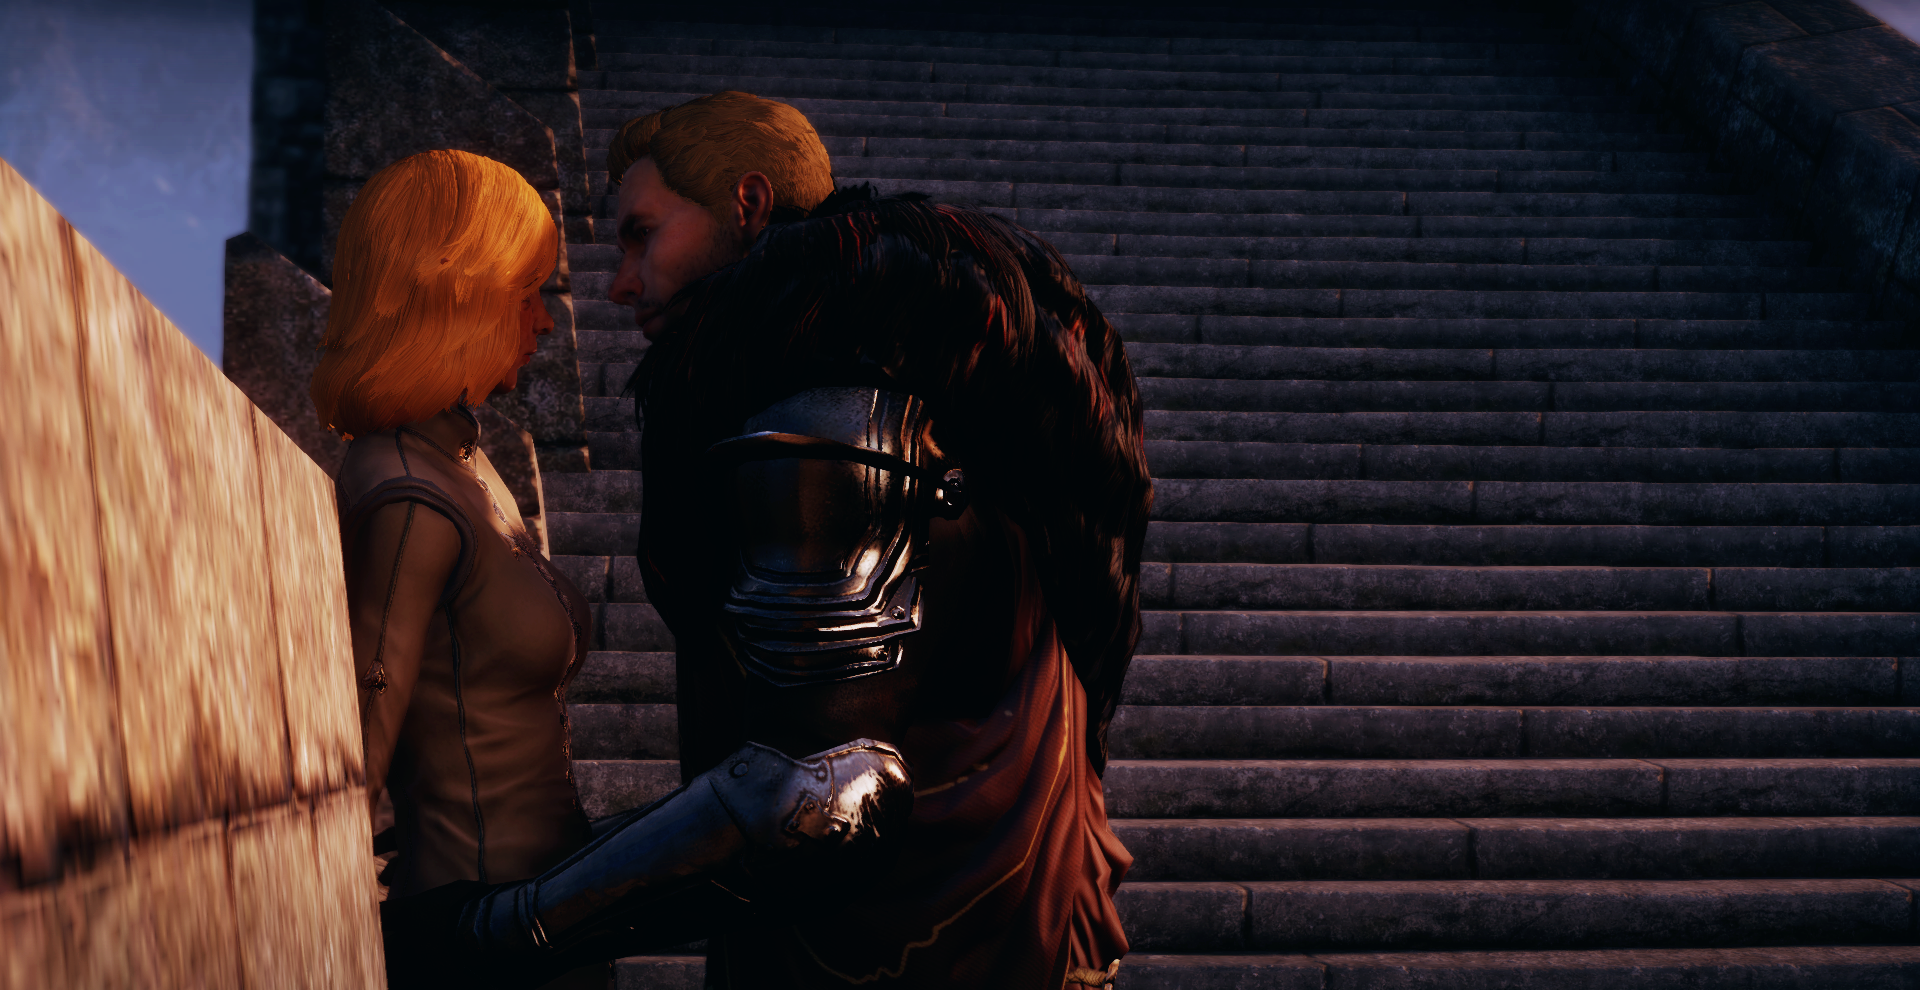 Dragon Age Cullen And Inquisitor By Darkshepard666 On Deviantart